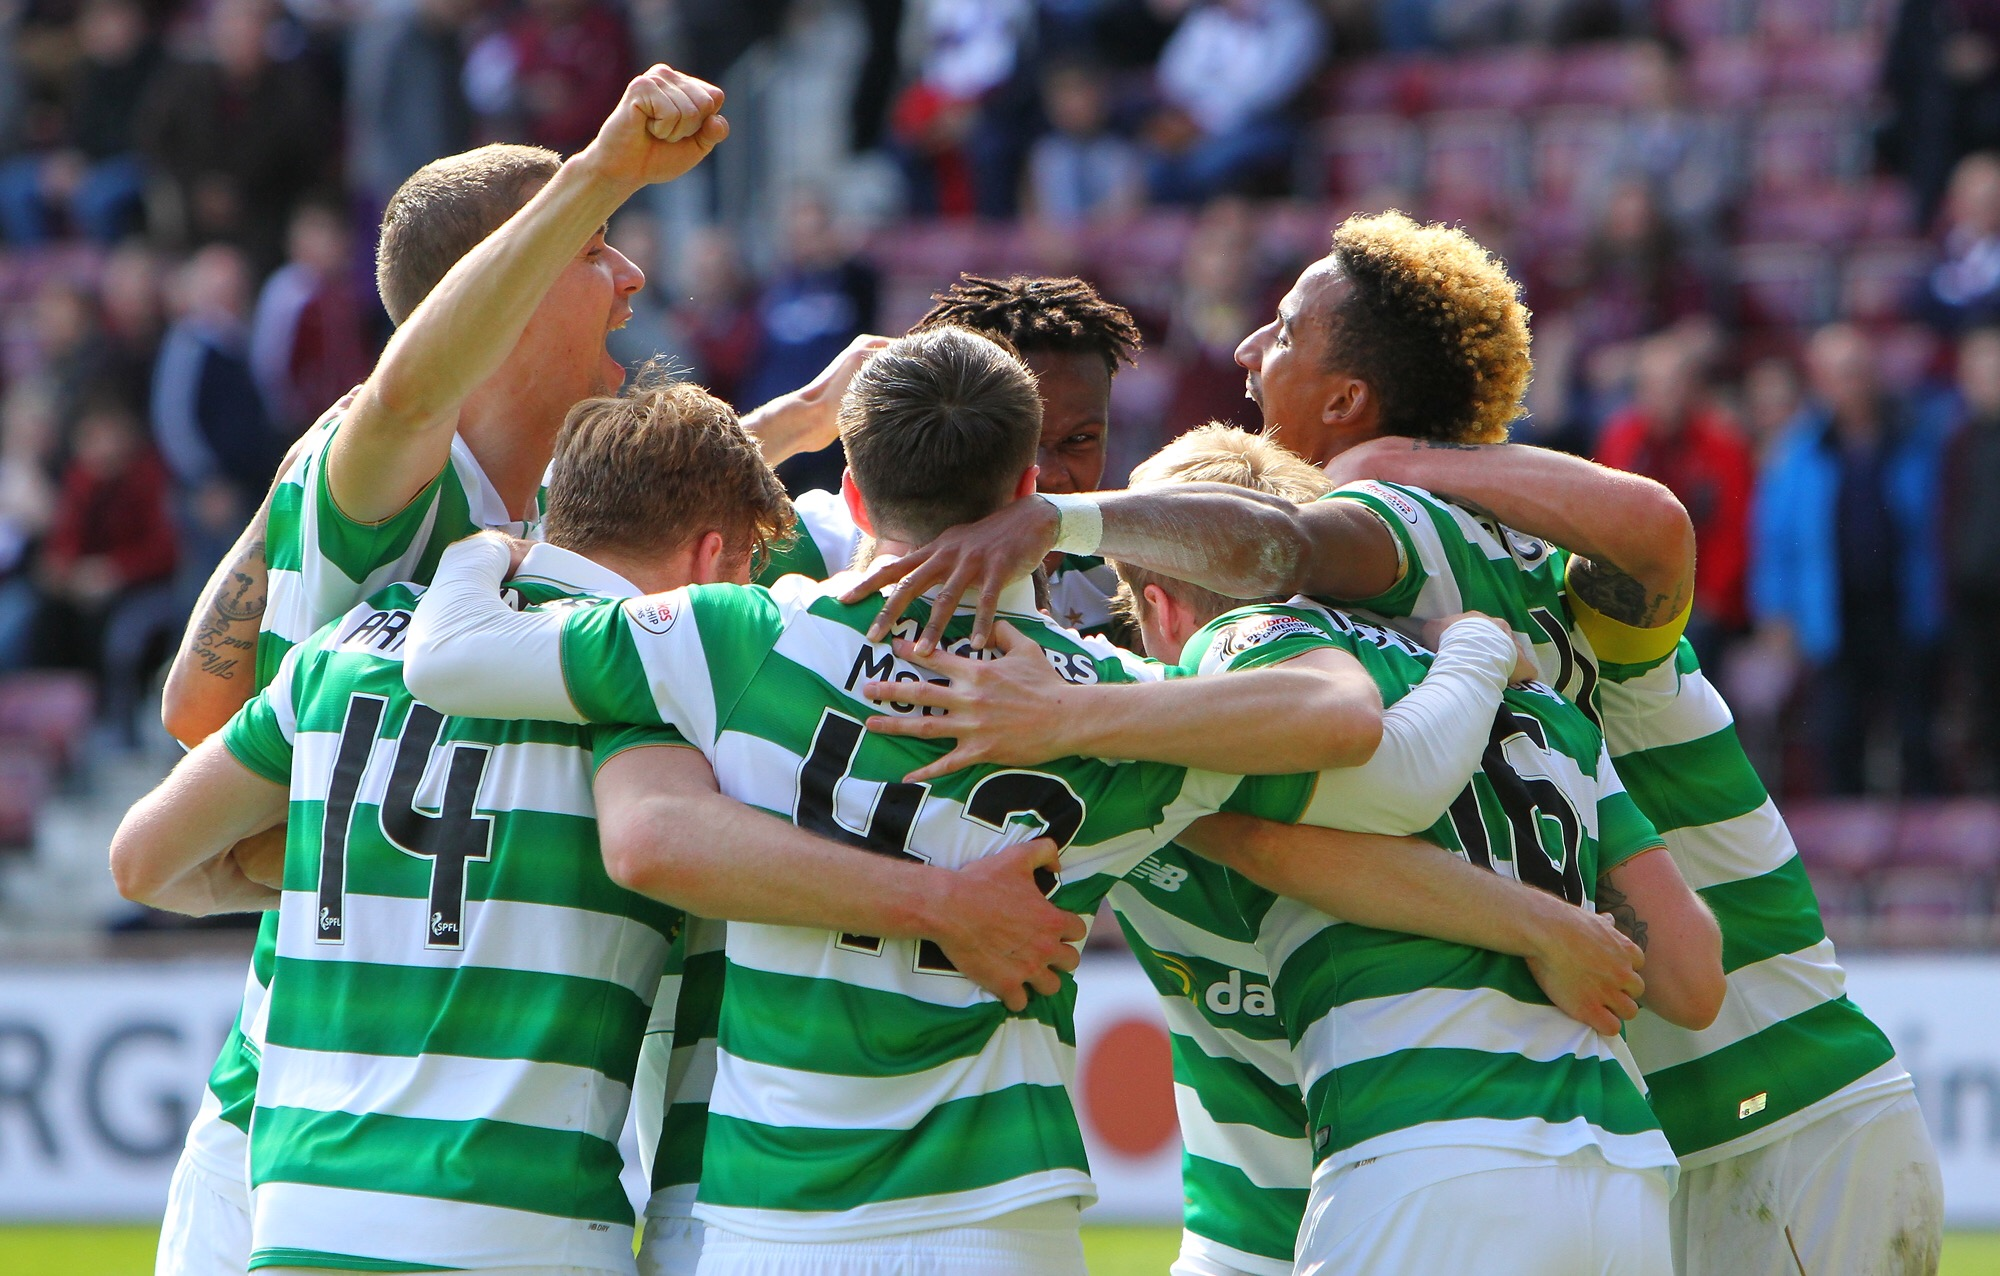 Latest Team News – Celtic No Worries. Sevco Hill Out And Foderingham A Doubt